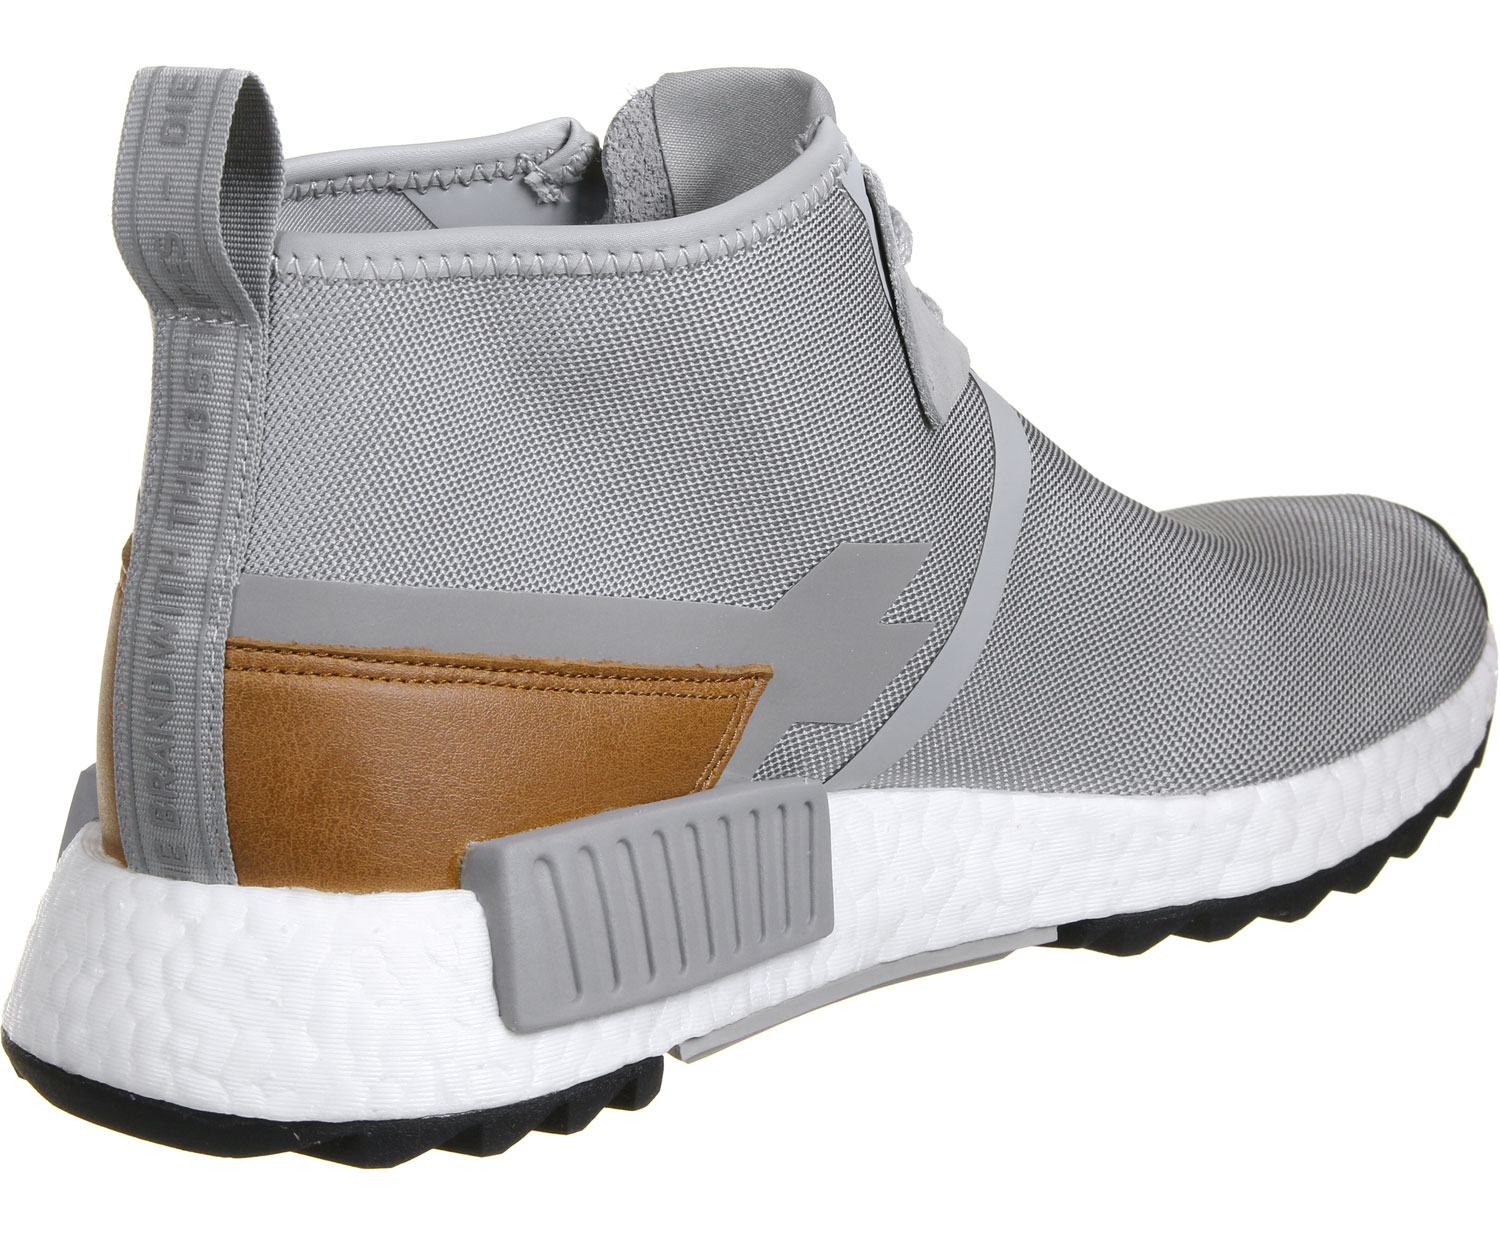 adidas NMD C1 TR - Sneakers High at